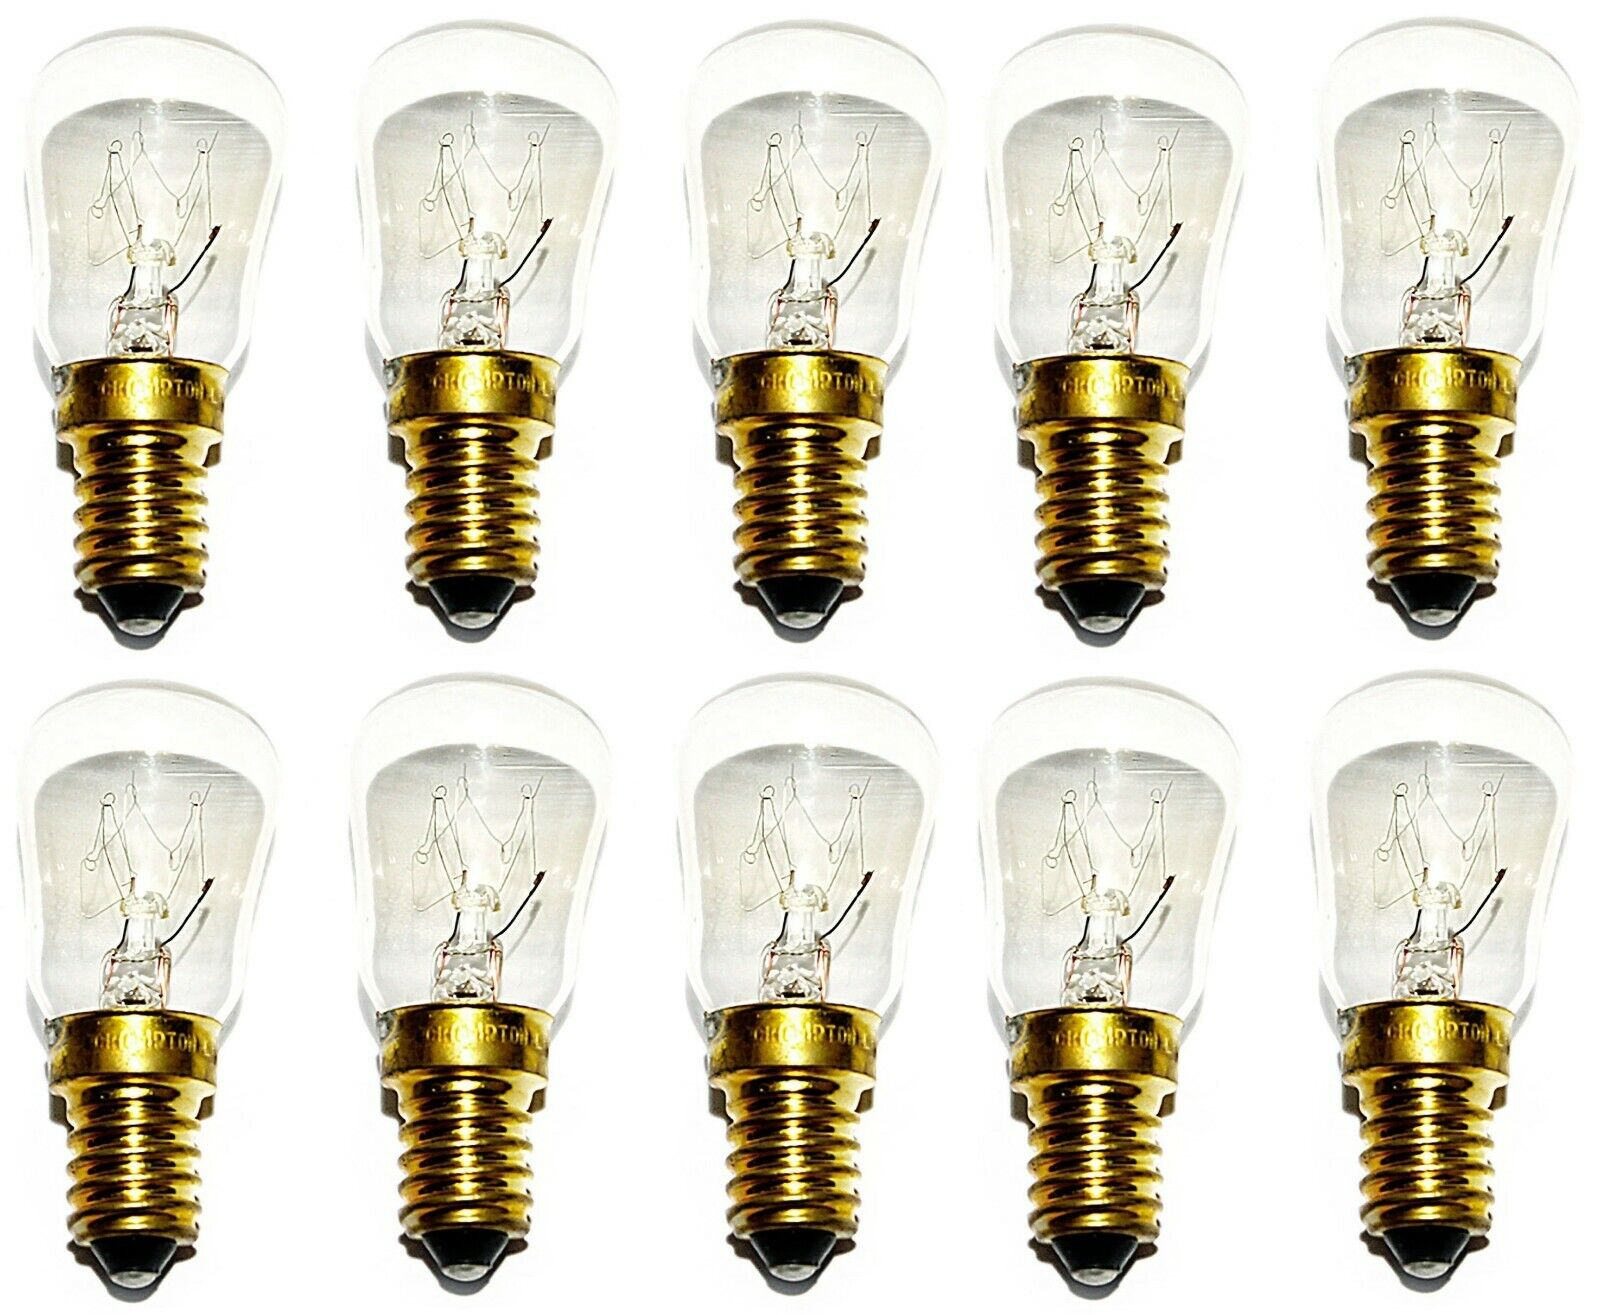 10 x 25w Watt SES E14 Microwave Oven Appliance Fridge Pygmy Screw in Light Bulbs